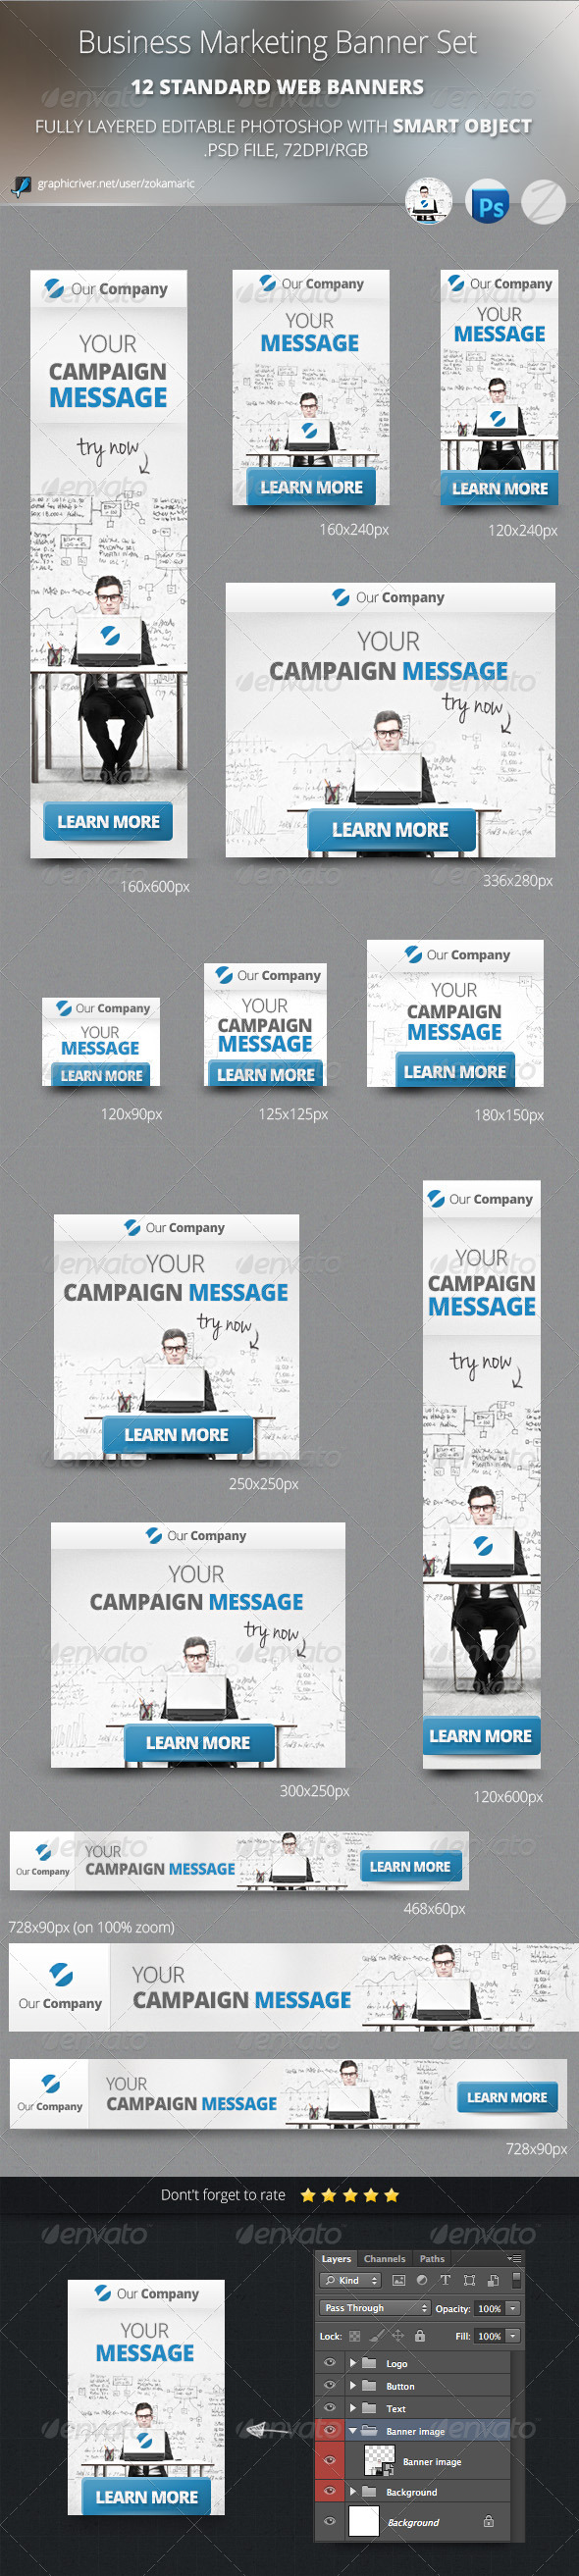 GraphicRiver Business Marketing Banner Set 5200139